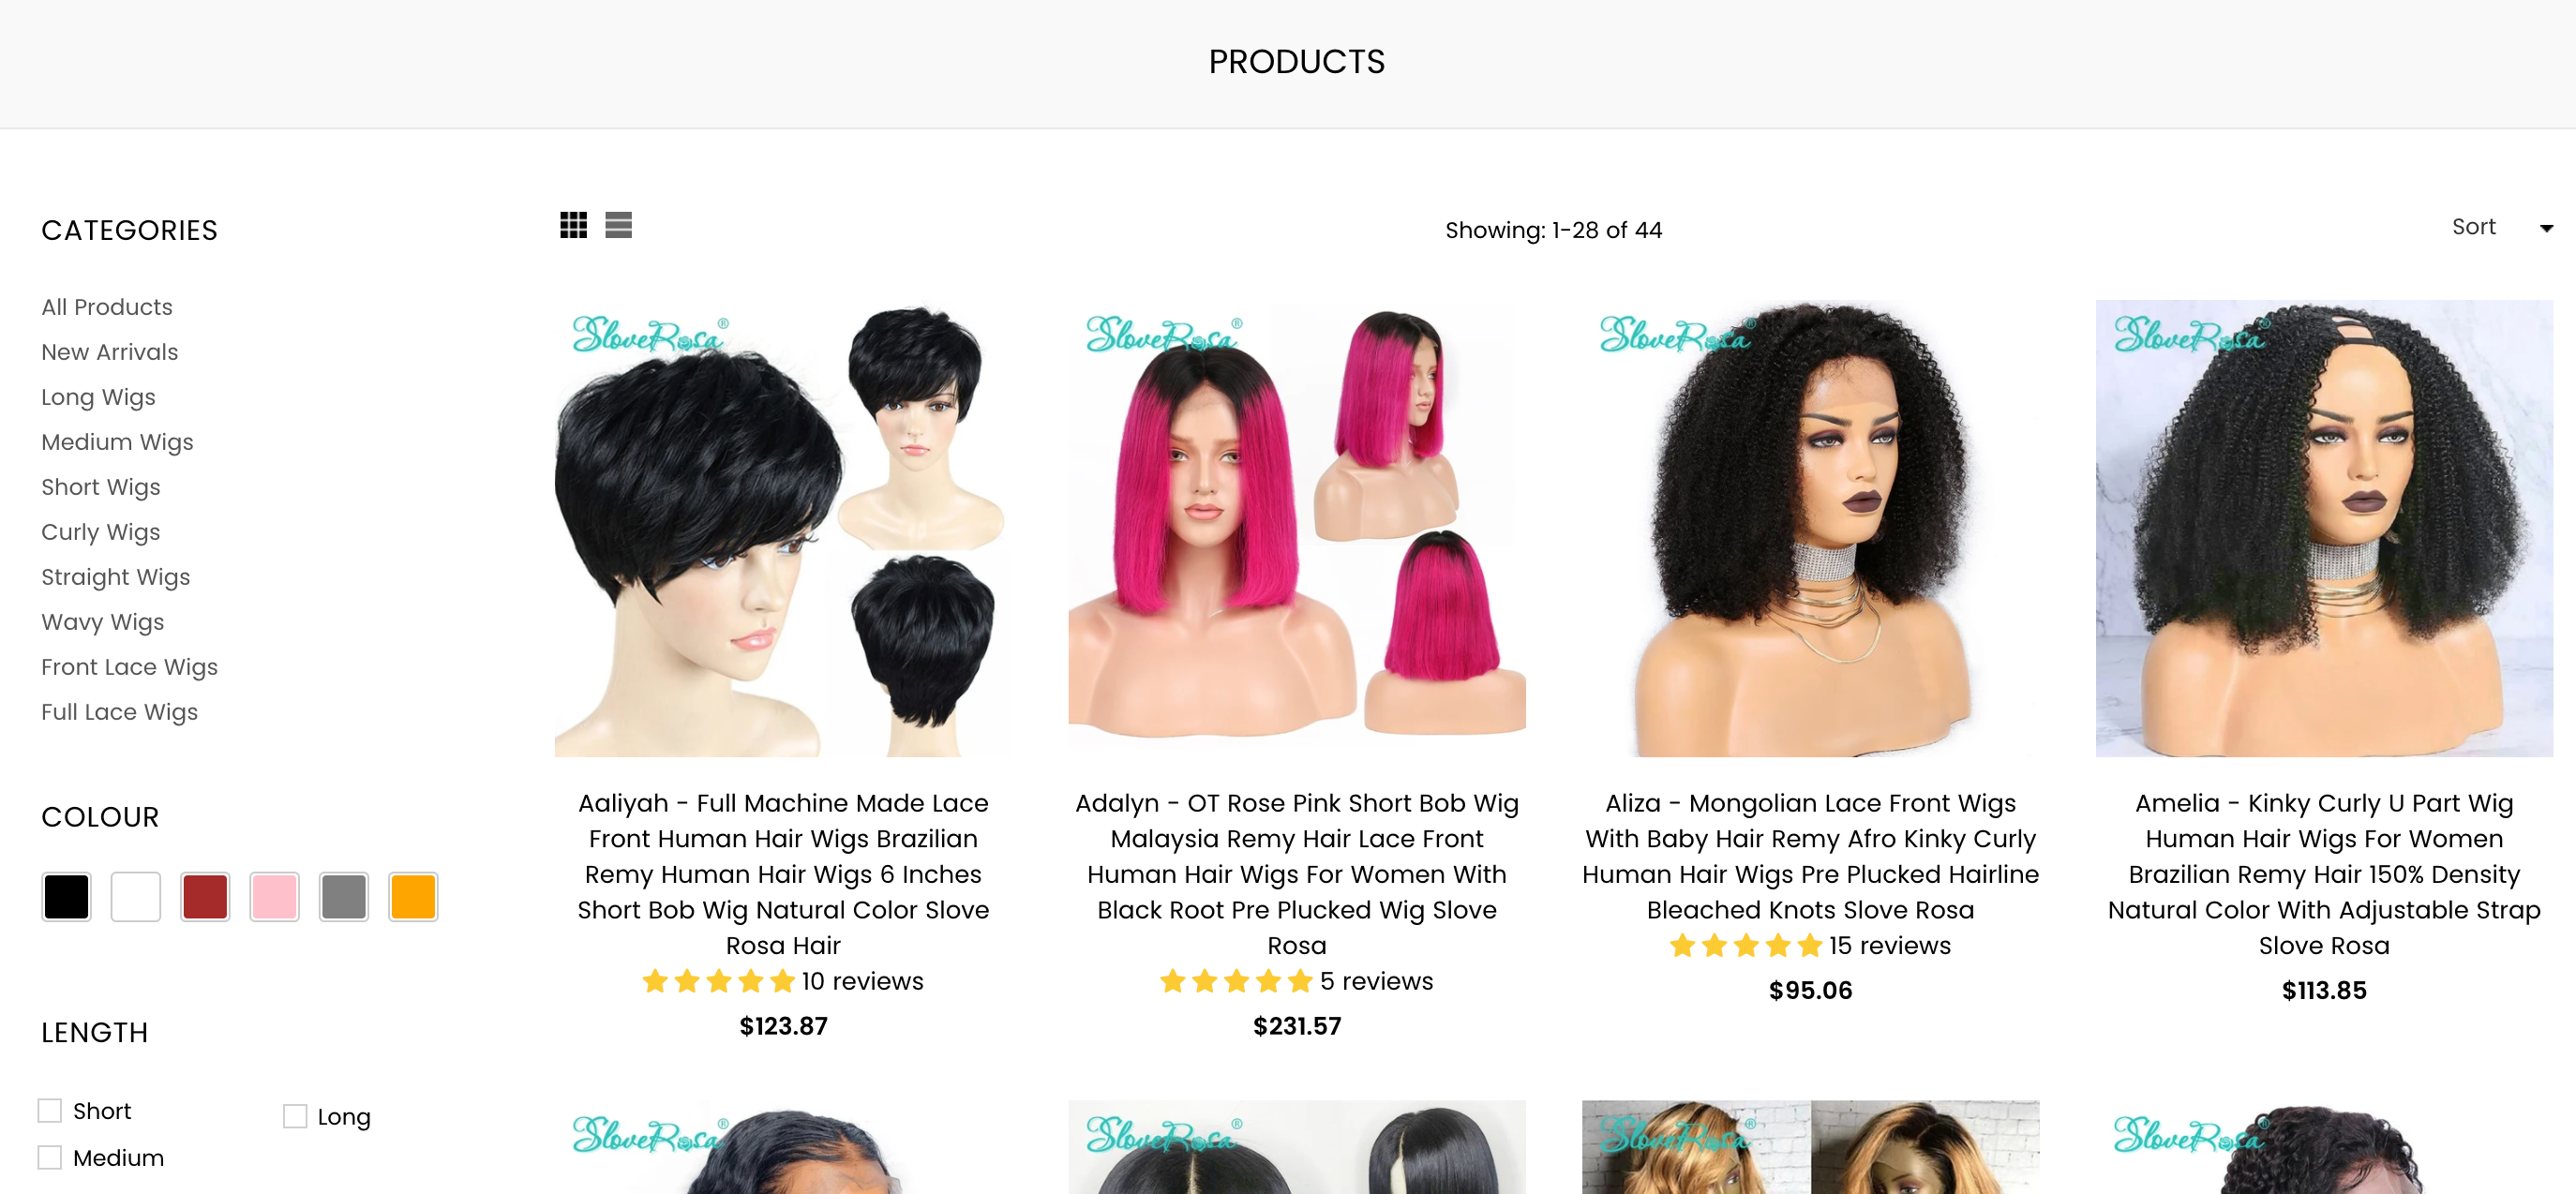 humanhairwigs.co website design